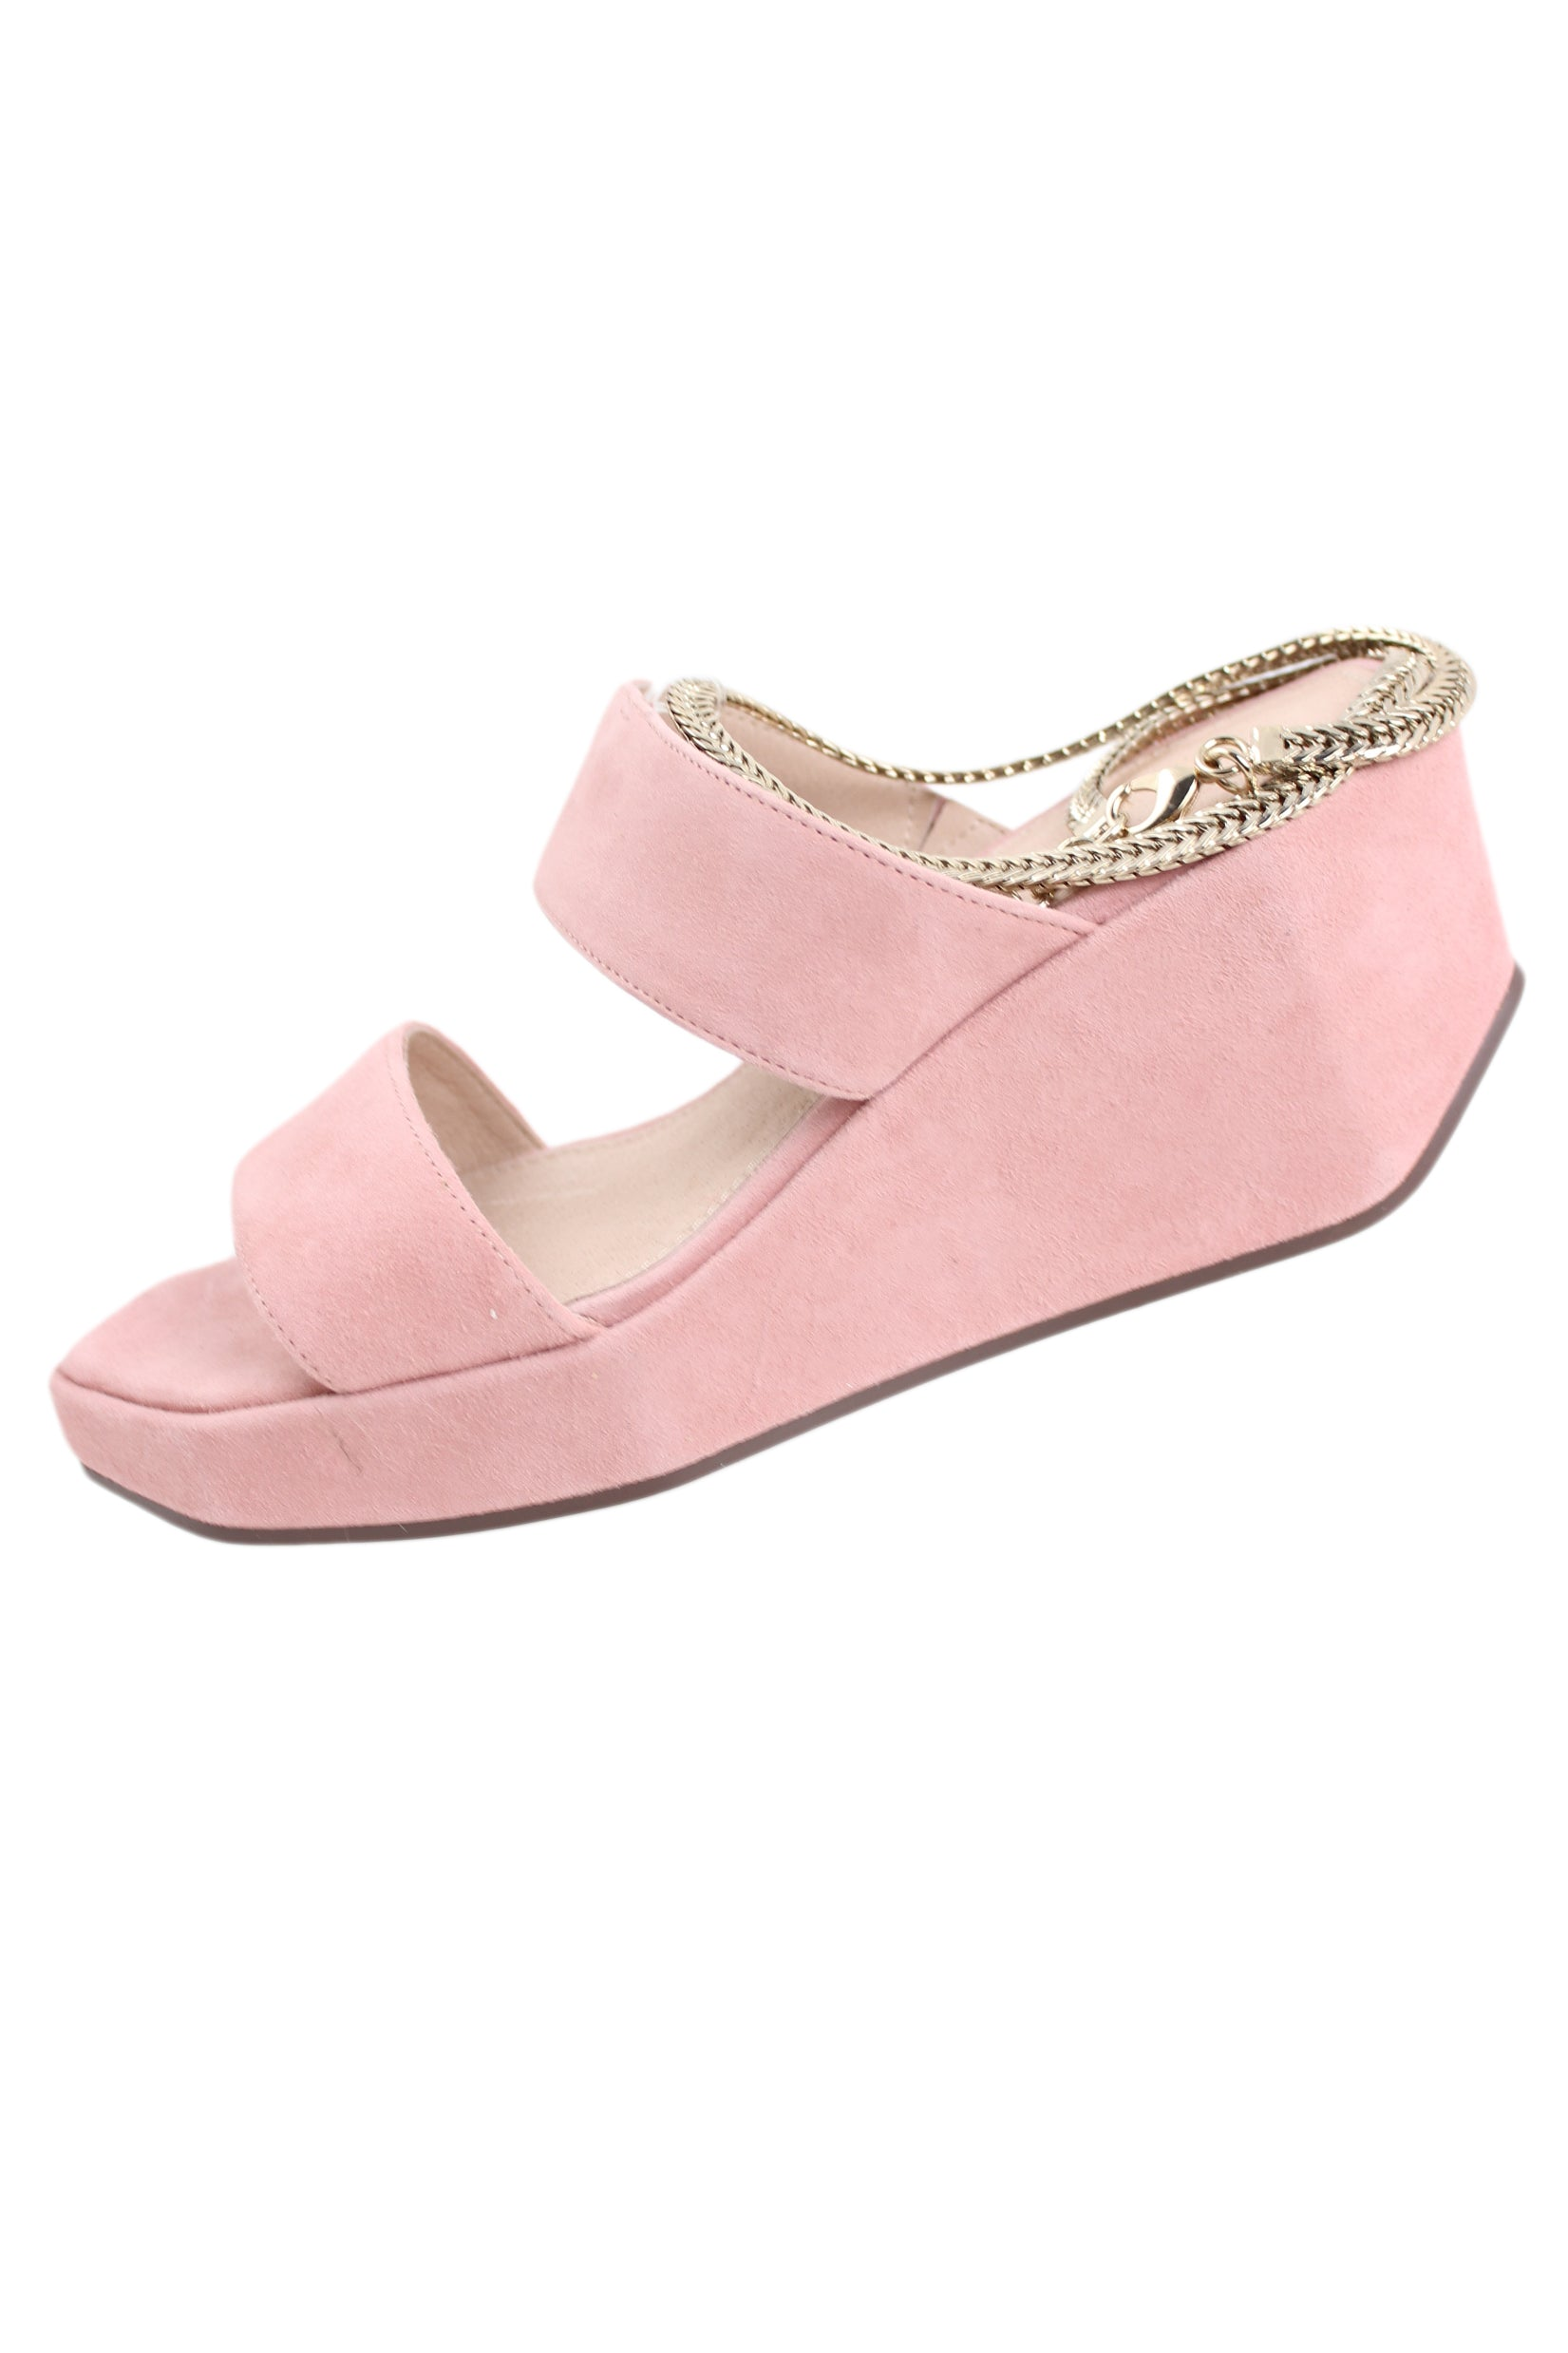 "cecilia new york pink ""baileves"" sandals. features geometric shaped wedge with removable chain. has dust bag."